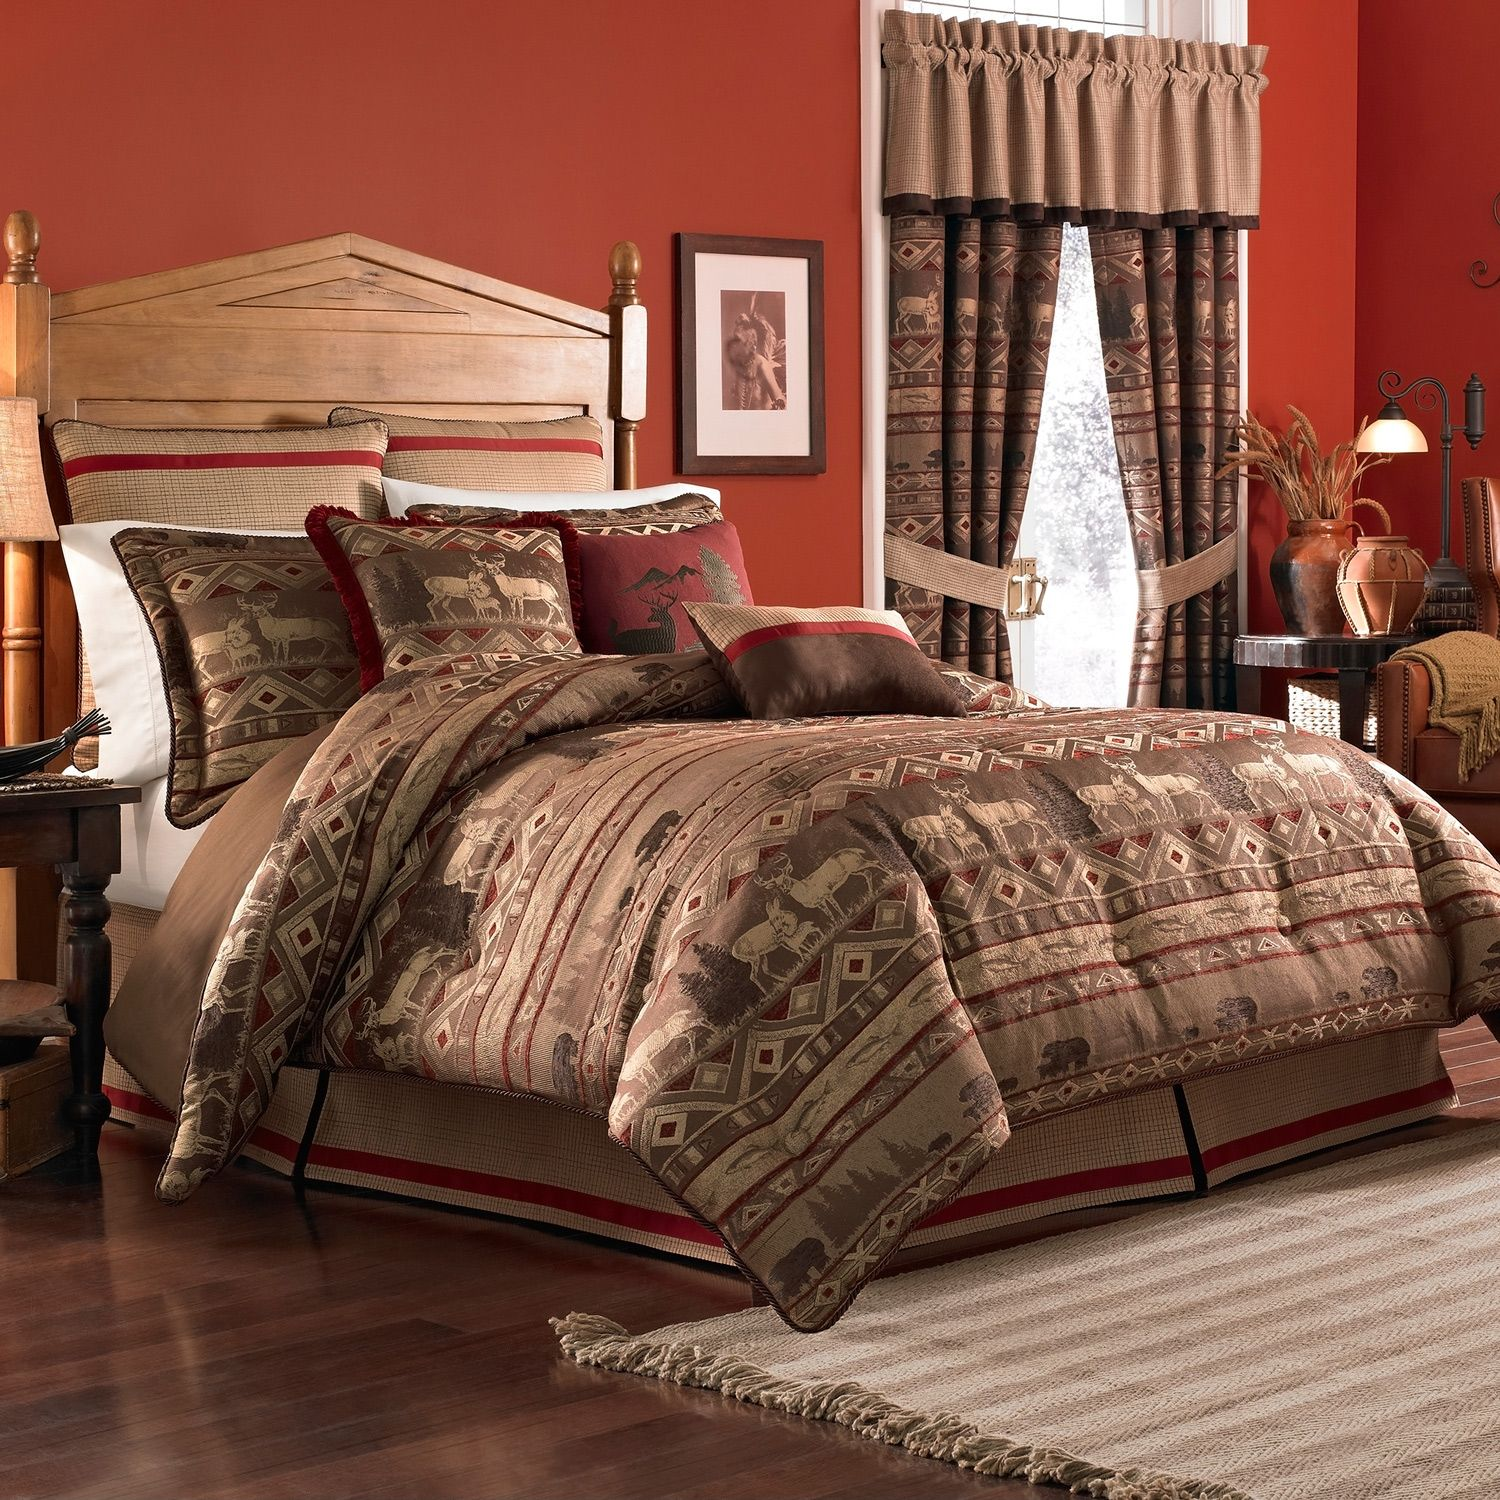 Charming queen size comforter sets for bedroom design with cheap queen size comforter sets